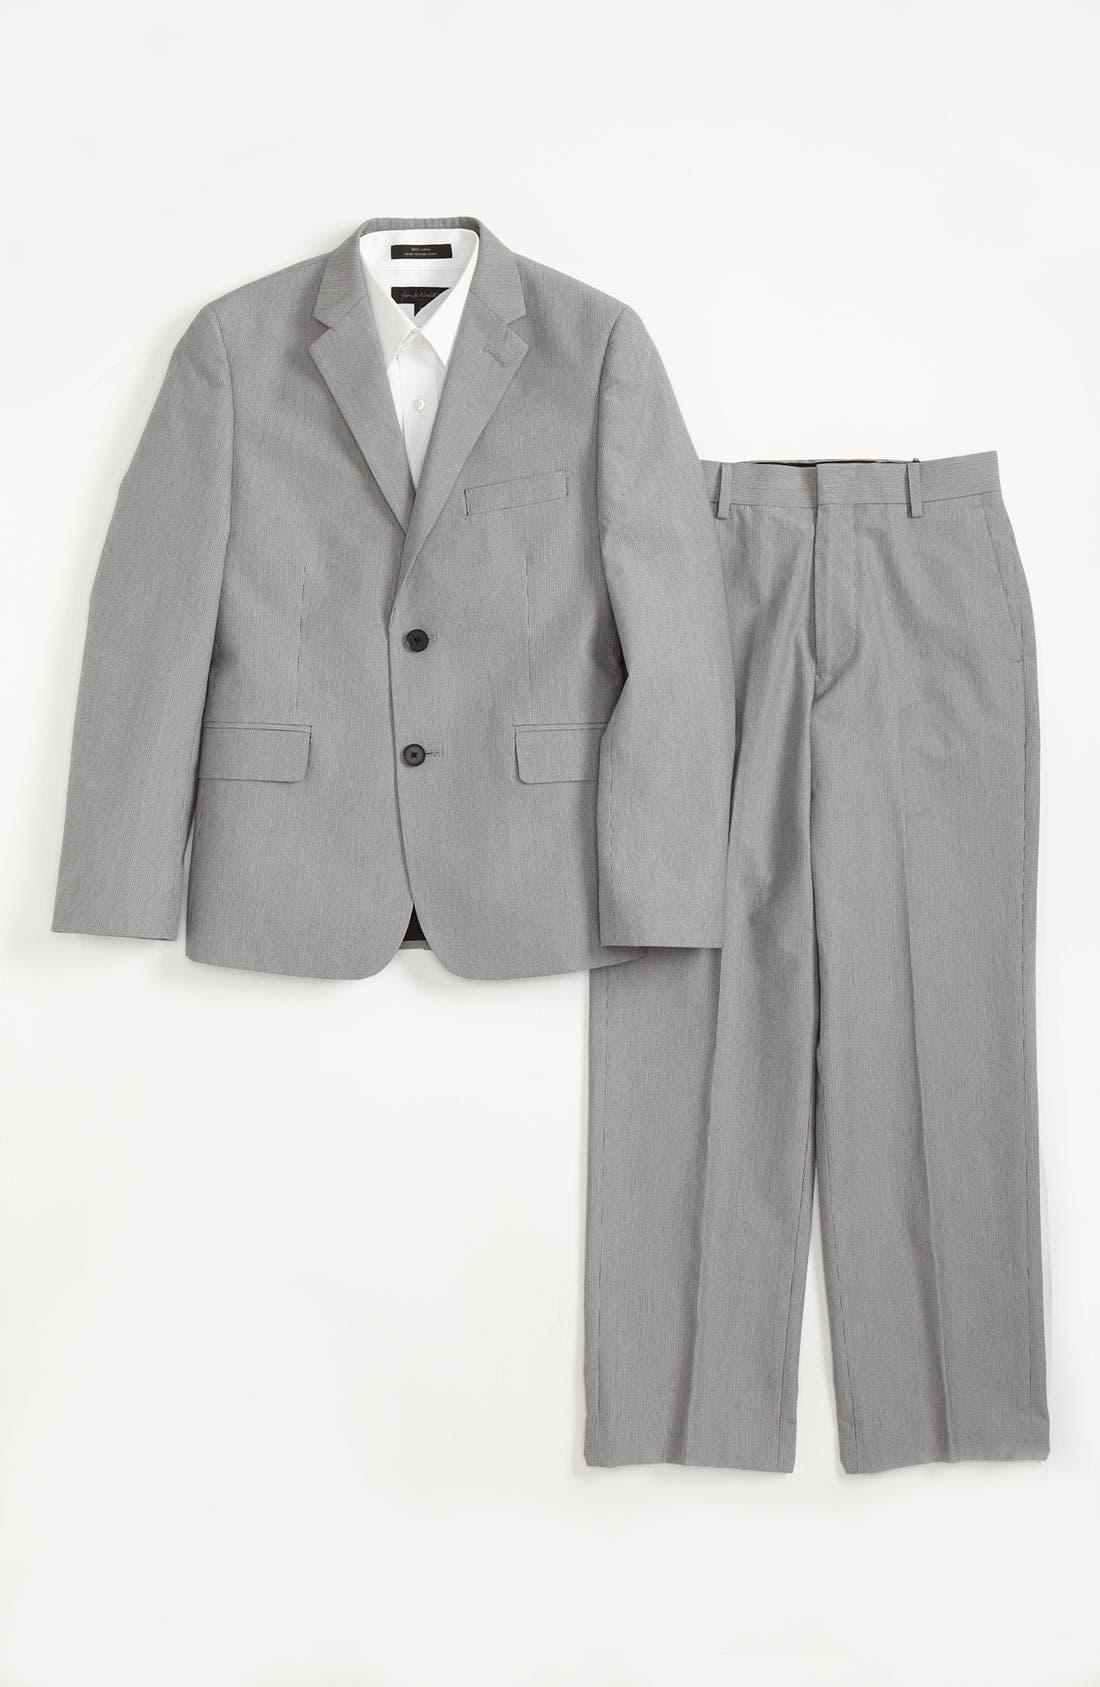 Alternate Image 1 Selected - C2 by Calibrate Suit Jacket, Dress Shirt & Trousers (Big Boys)